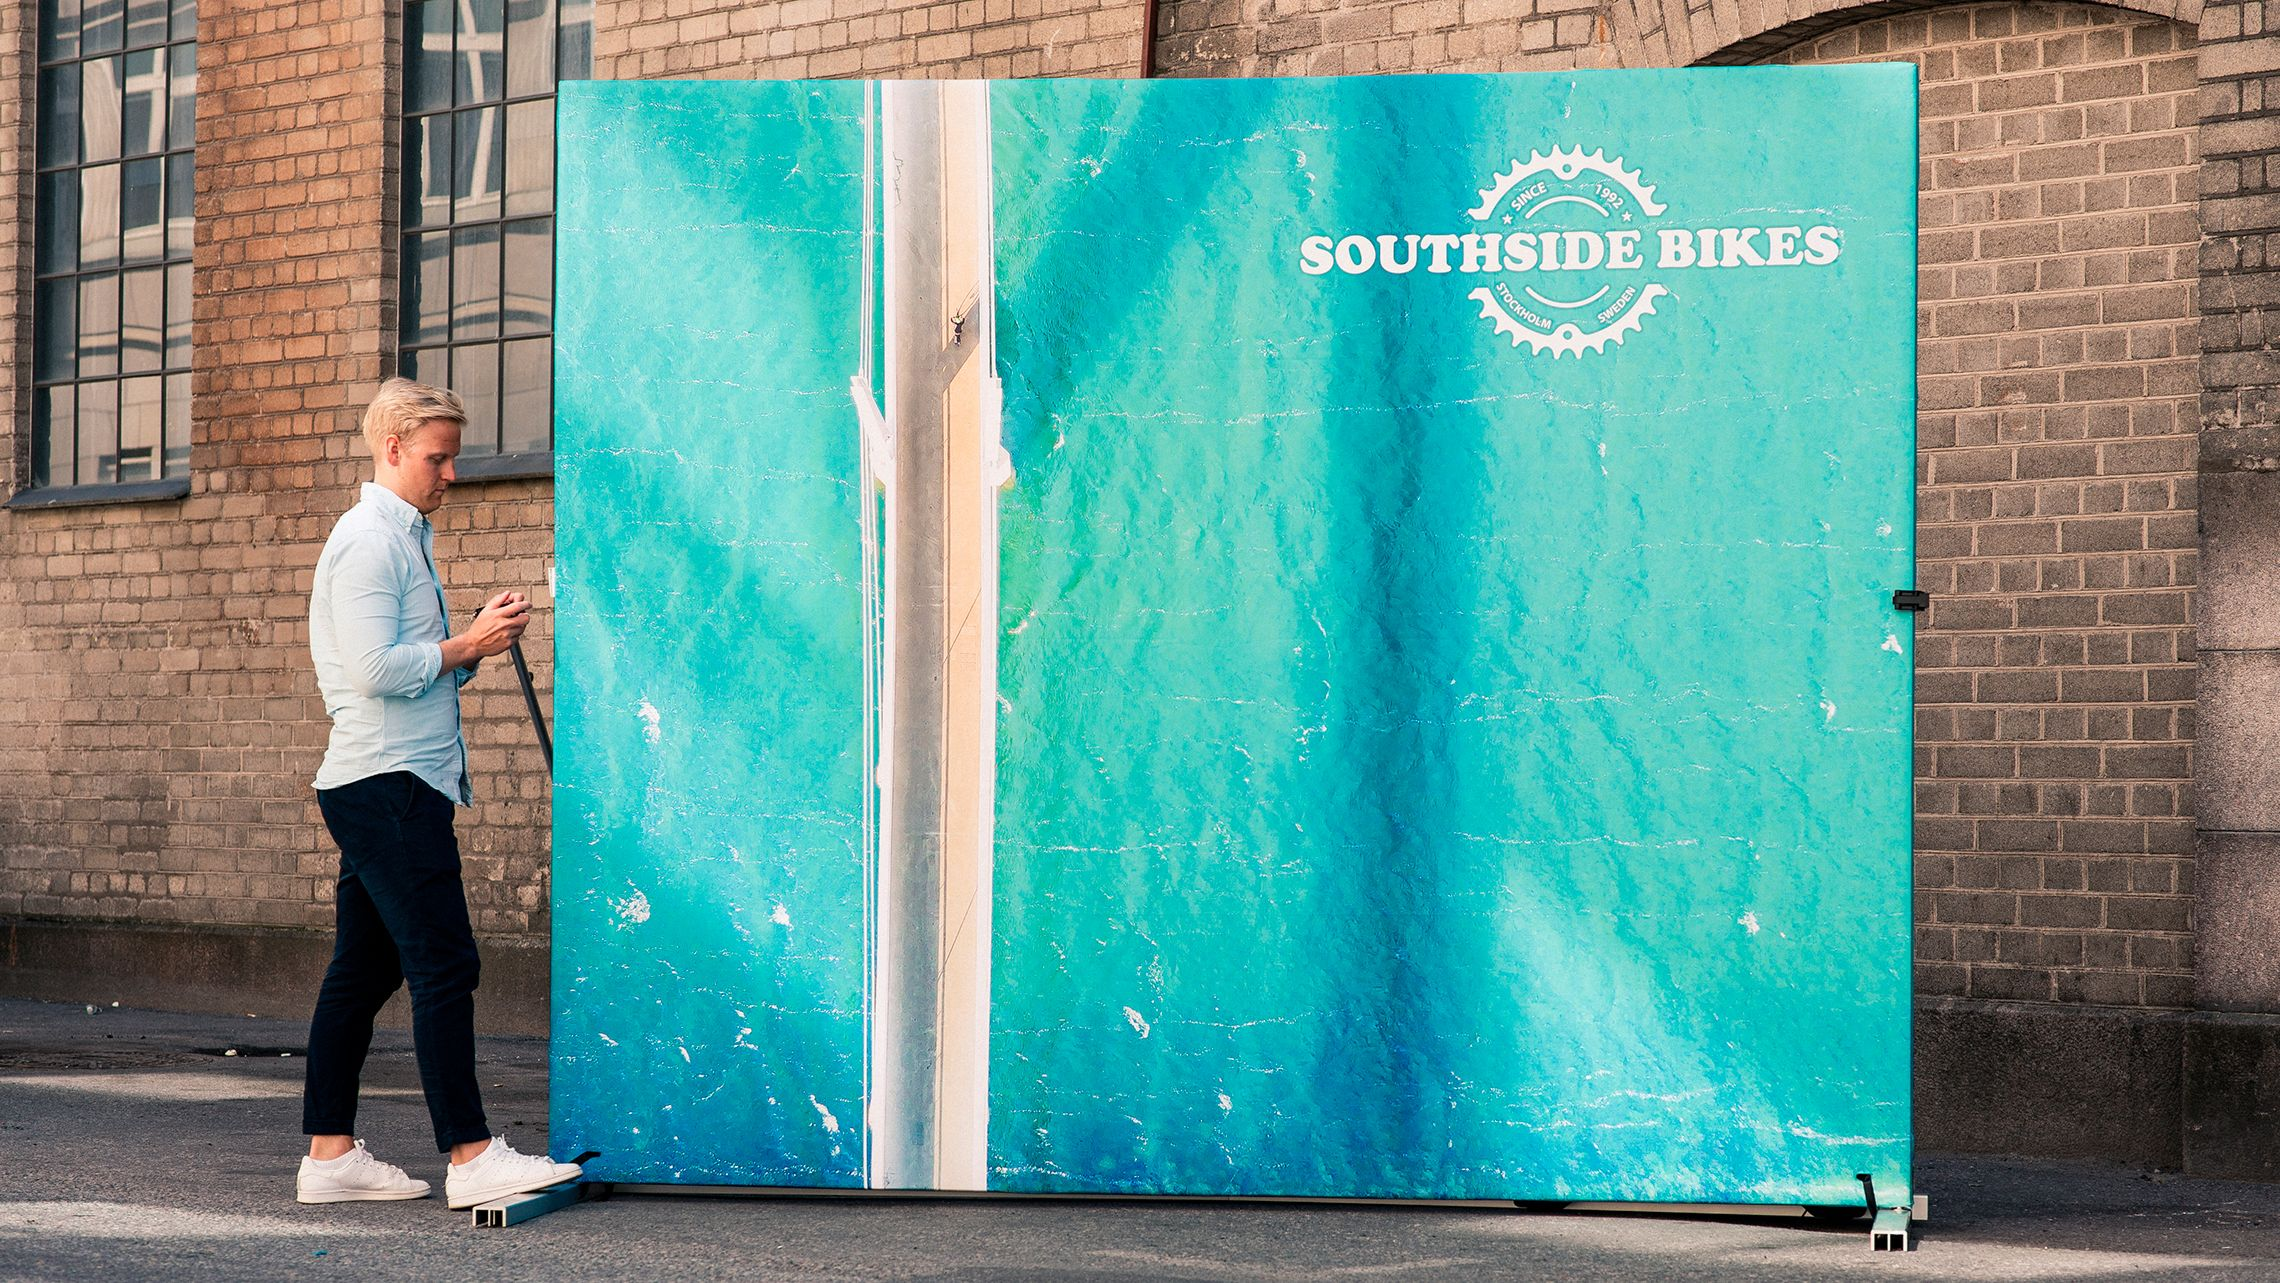 Expand-outdoor-southsidebikes-180627-0049 16-9